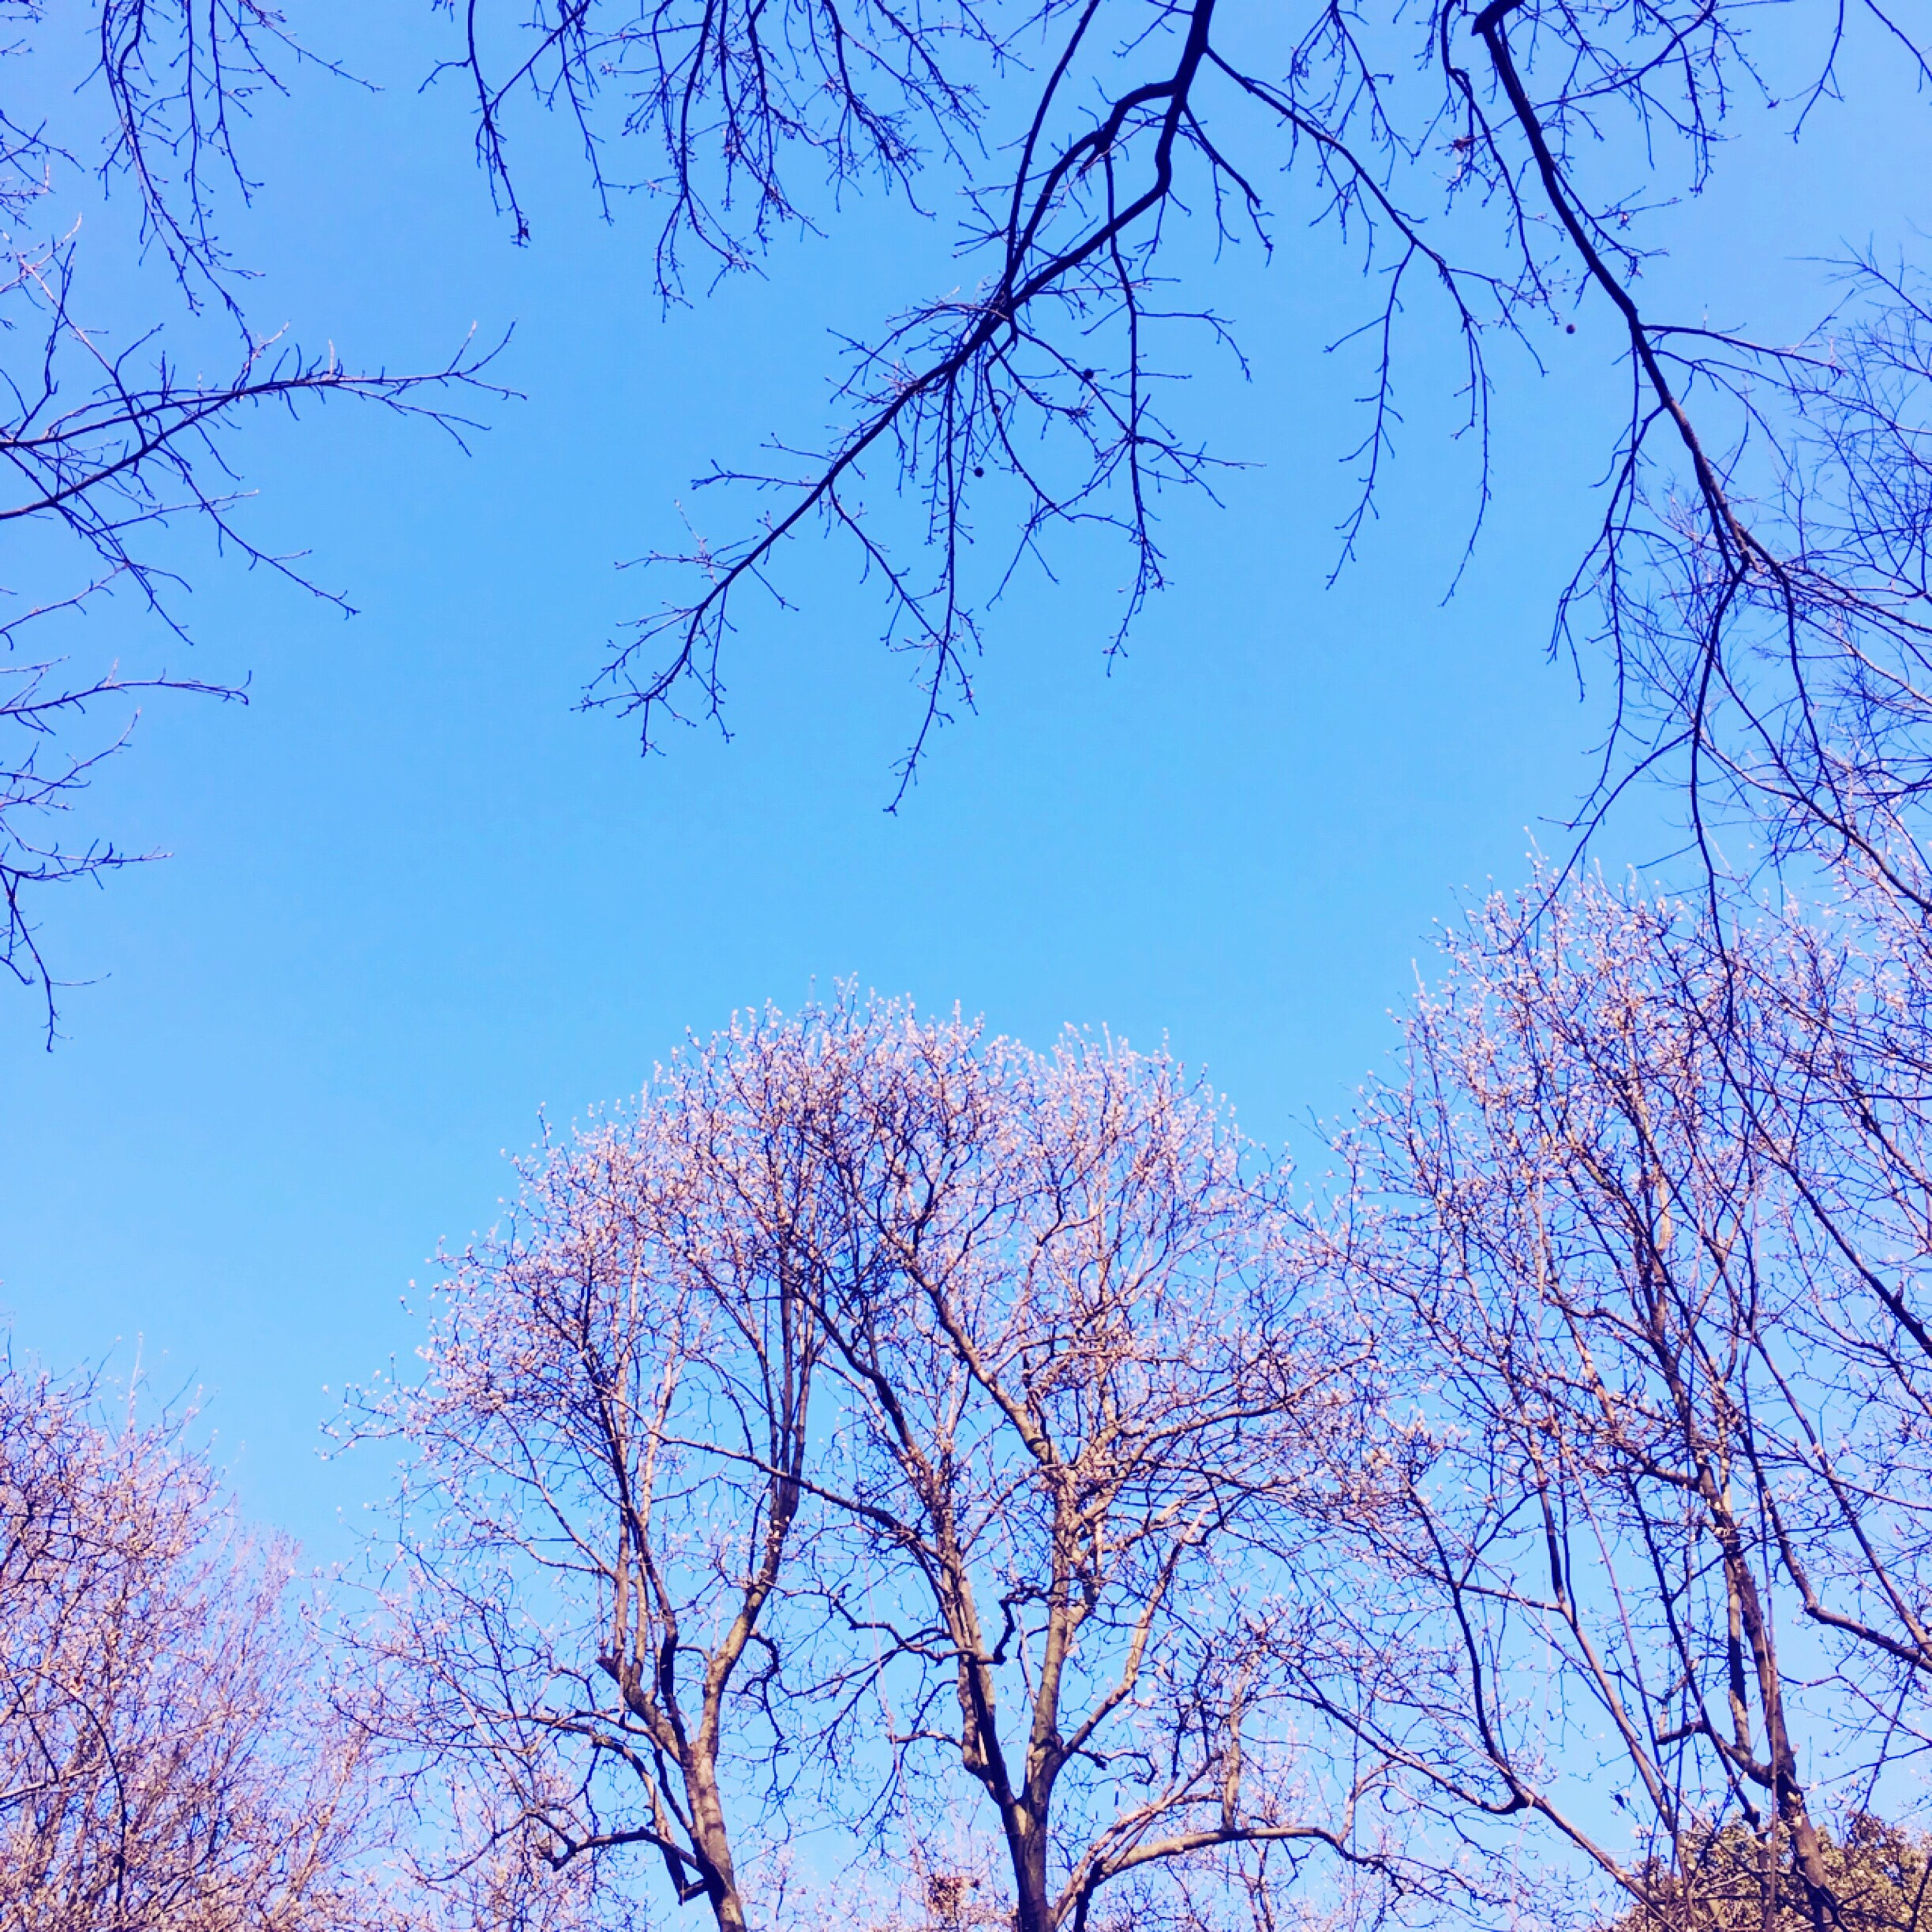 branch, tree, low angle view, bare tree, clear sky, blue, beauty in nature, nature, tranquility, growth, scenics, sky, high section, autumn, outdoors, silhouette, no people, day, season, twig